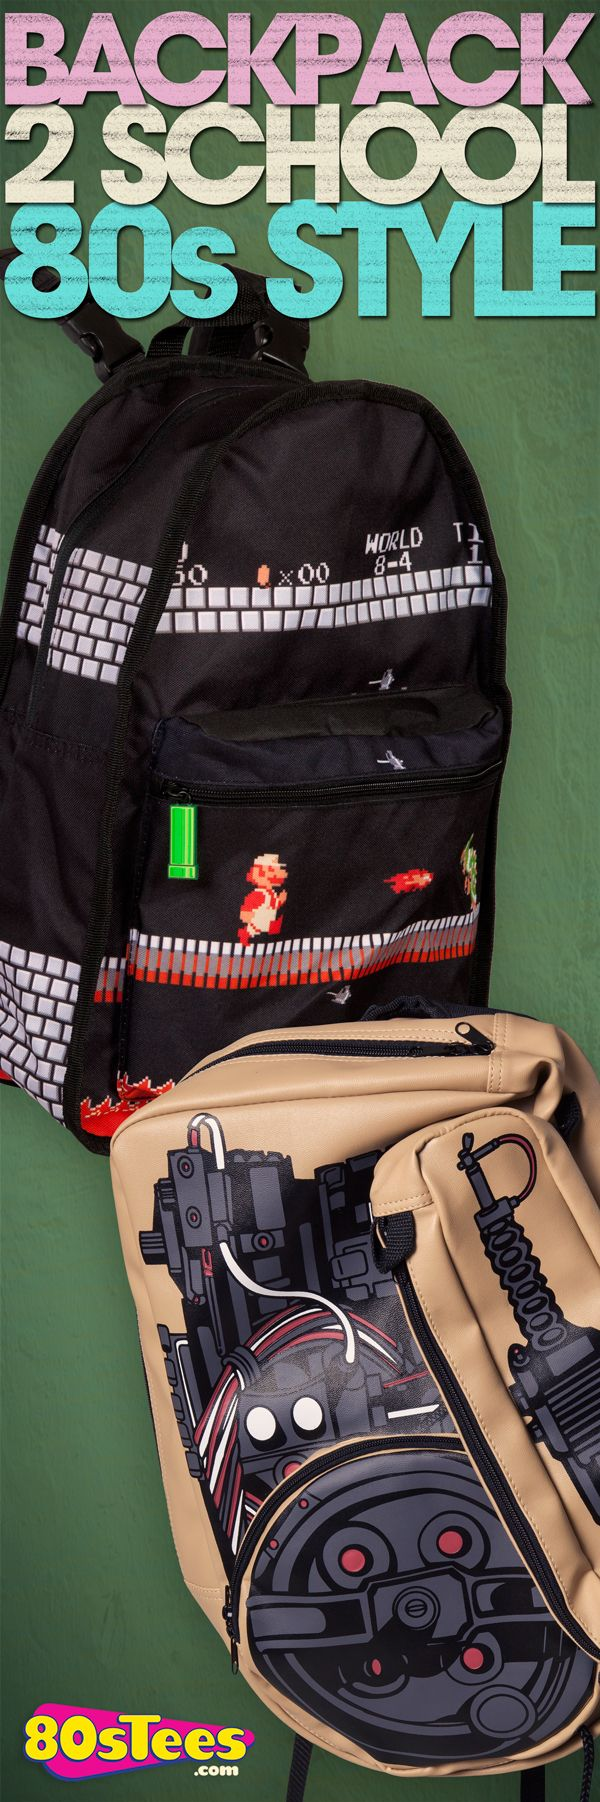 Find these awesome Super Mario and Ghostbusters backpacks exclusively at 80sTees.com!